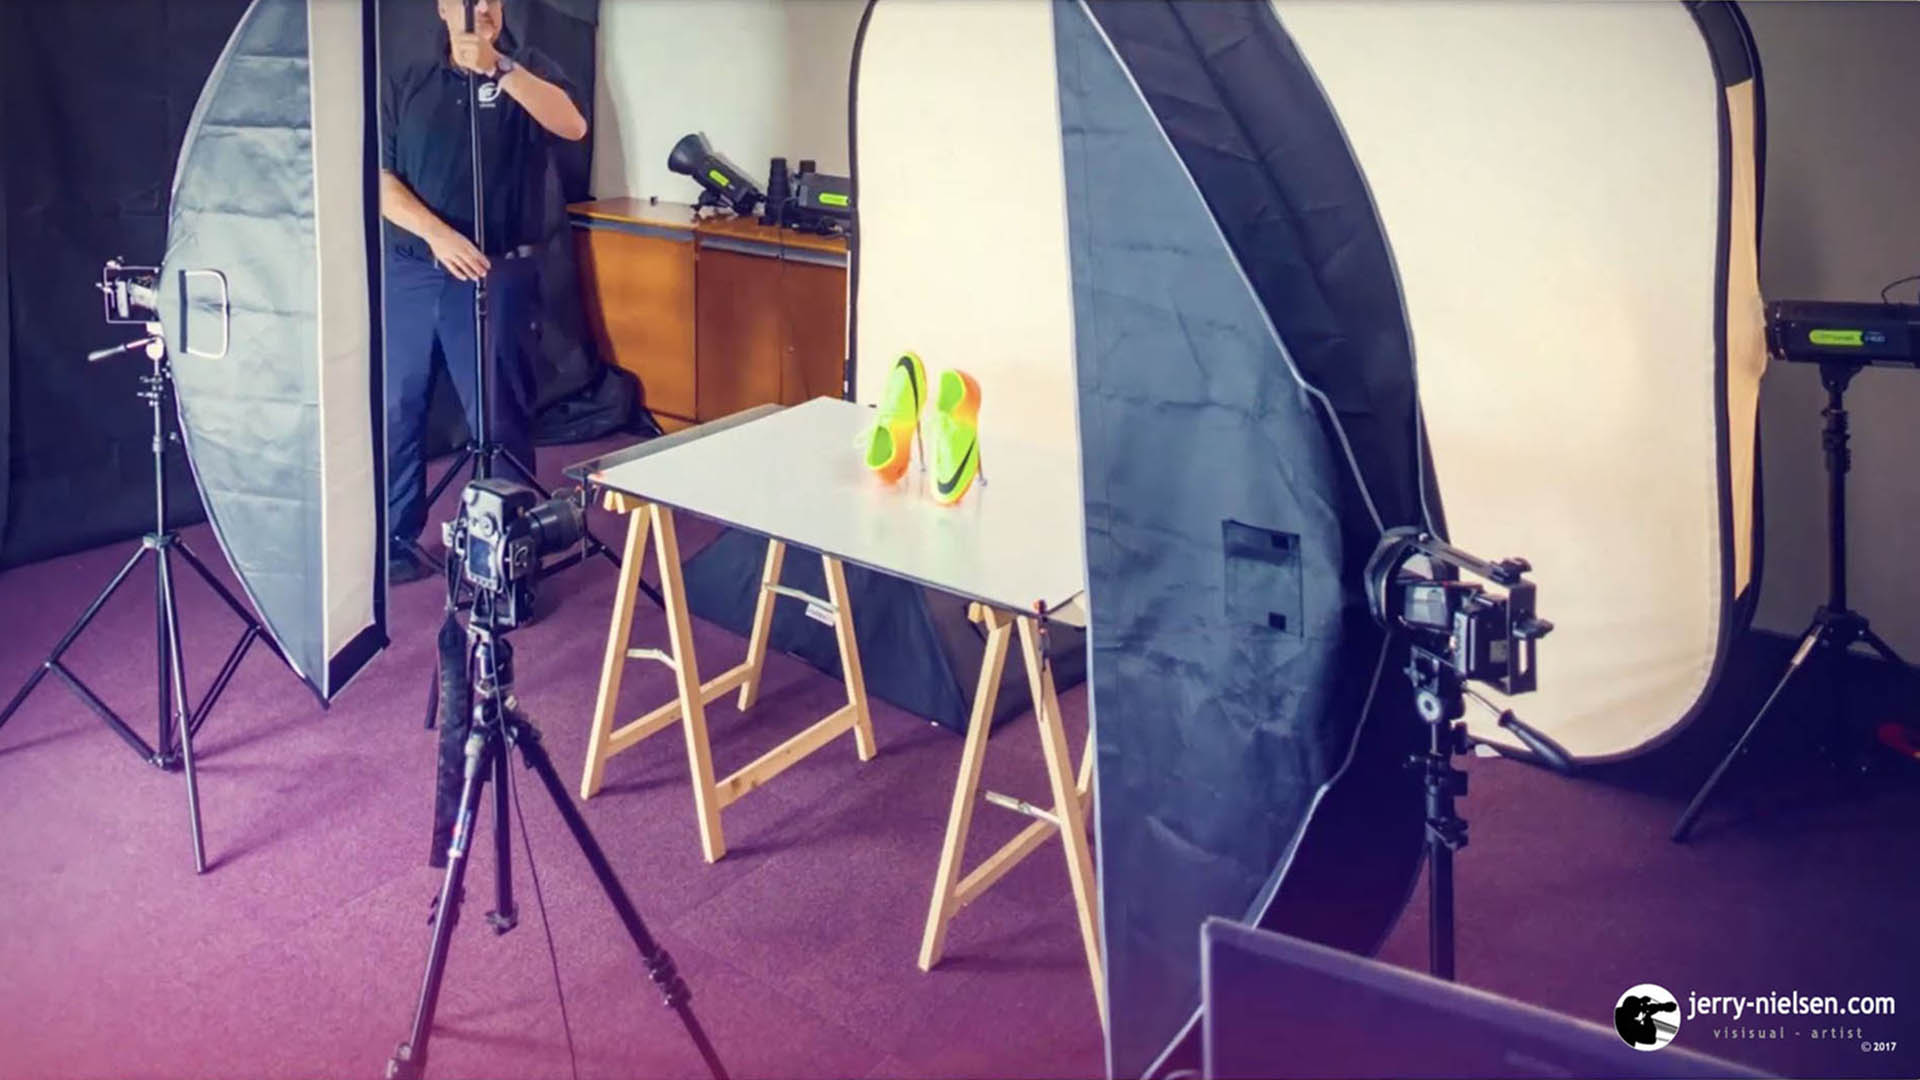 Time-lapse, of Jerry Nielsen at work. He is setting up the studio to take a product shot.